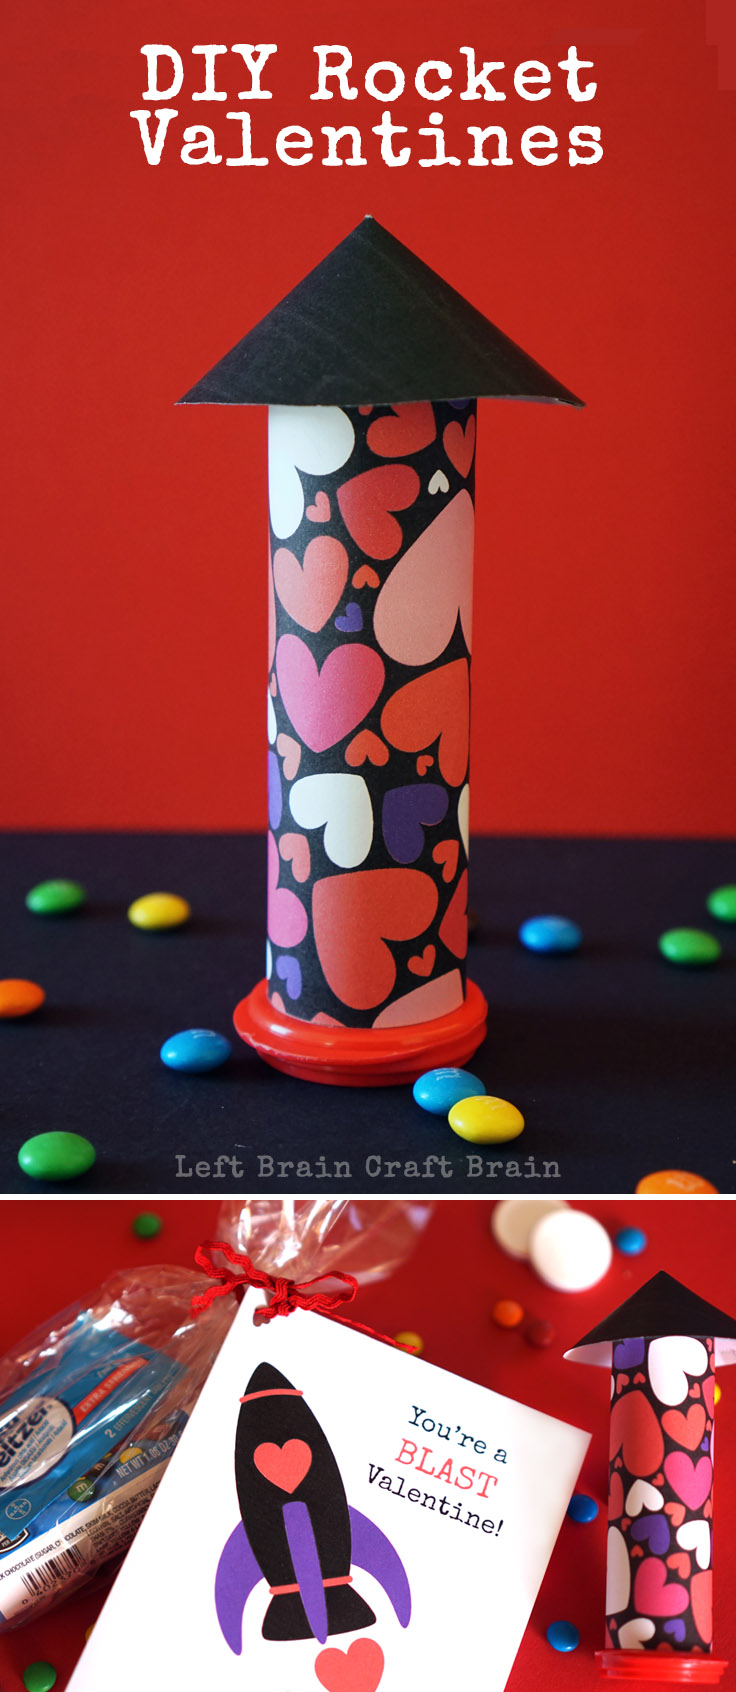 This year give fun, flying DIY Rocket Valentines. Wrap up M&M's, Alka Seltzer and a free printable card for an awesome Valentine's Day STEM project for kids.